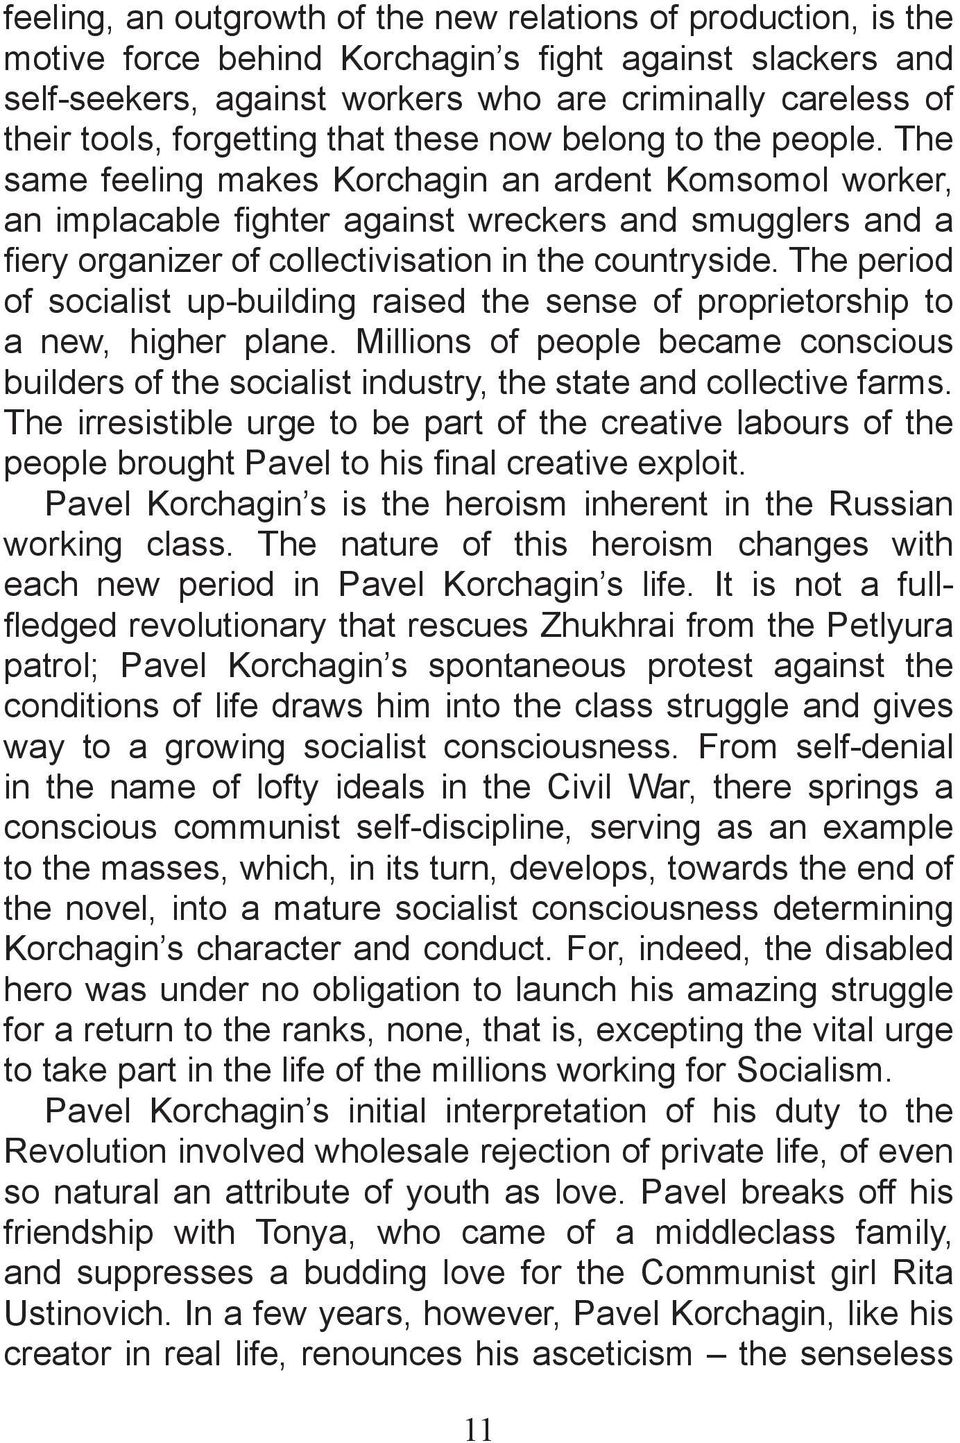 The same feeling makes Korchagin an ardent Komsomol worker, an implacable fighter against wreckers and smugglers and a fiery organizer of collectivisation in the countryside.